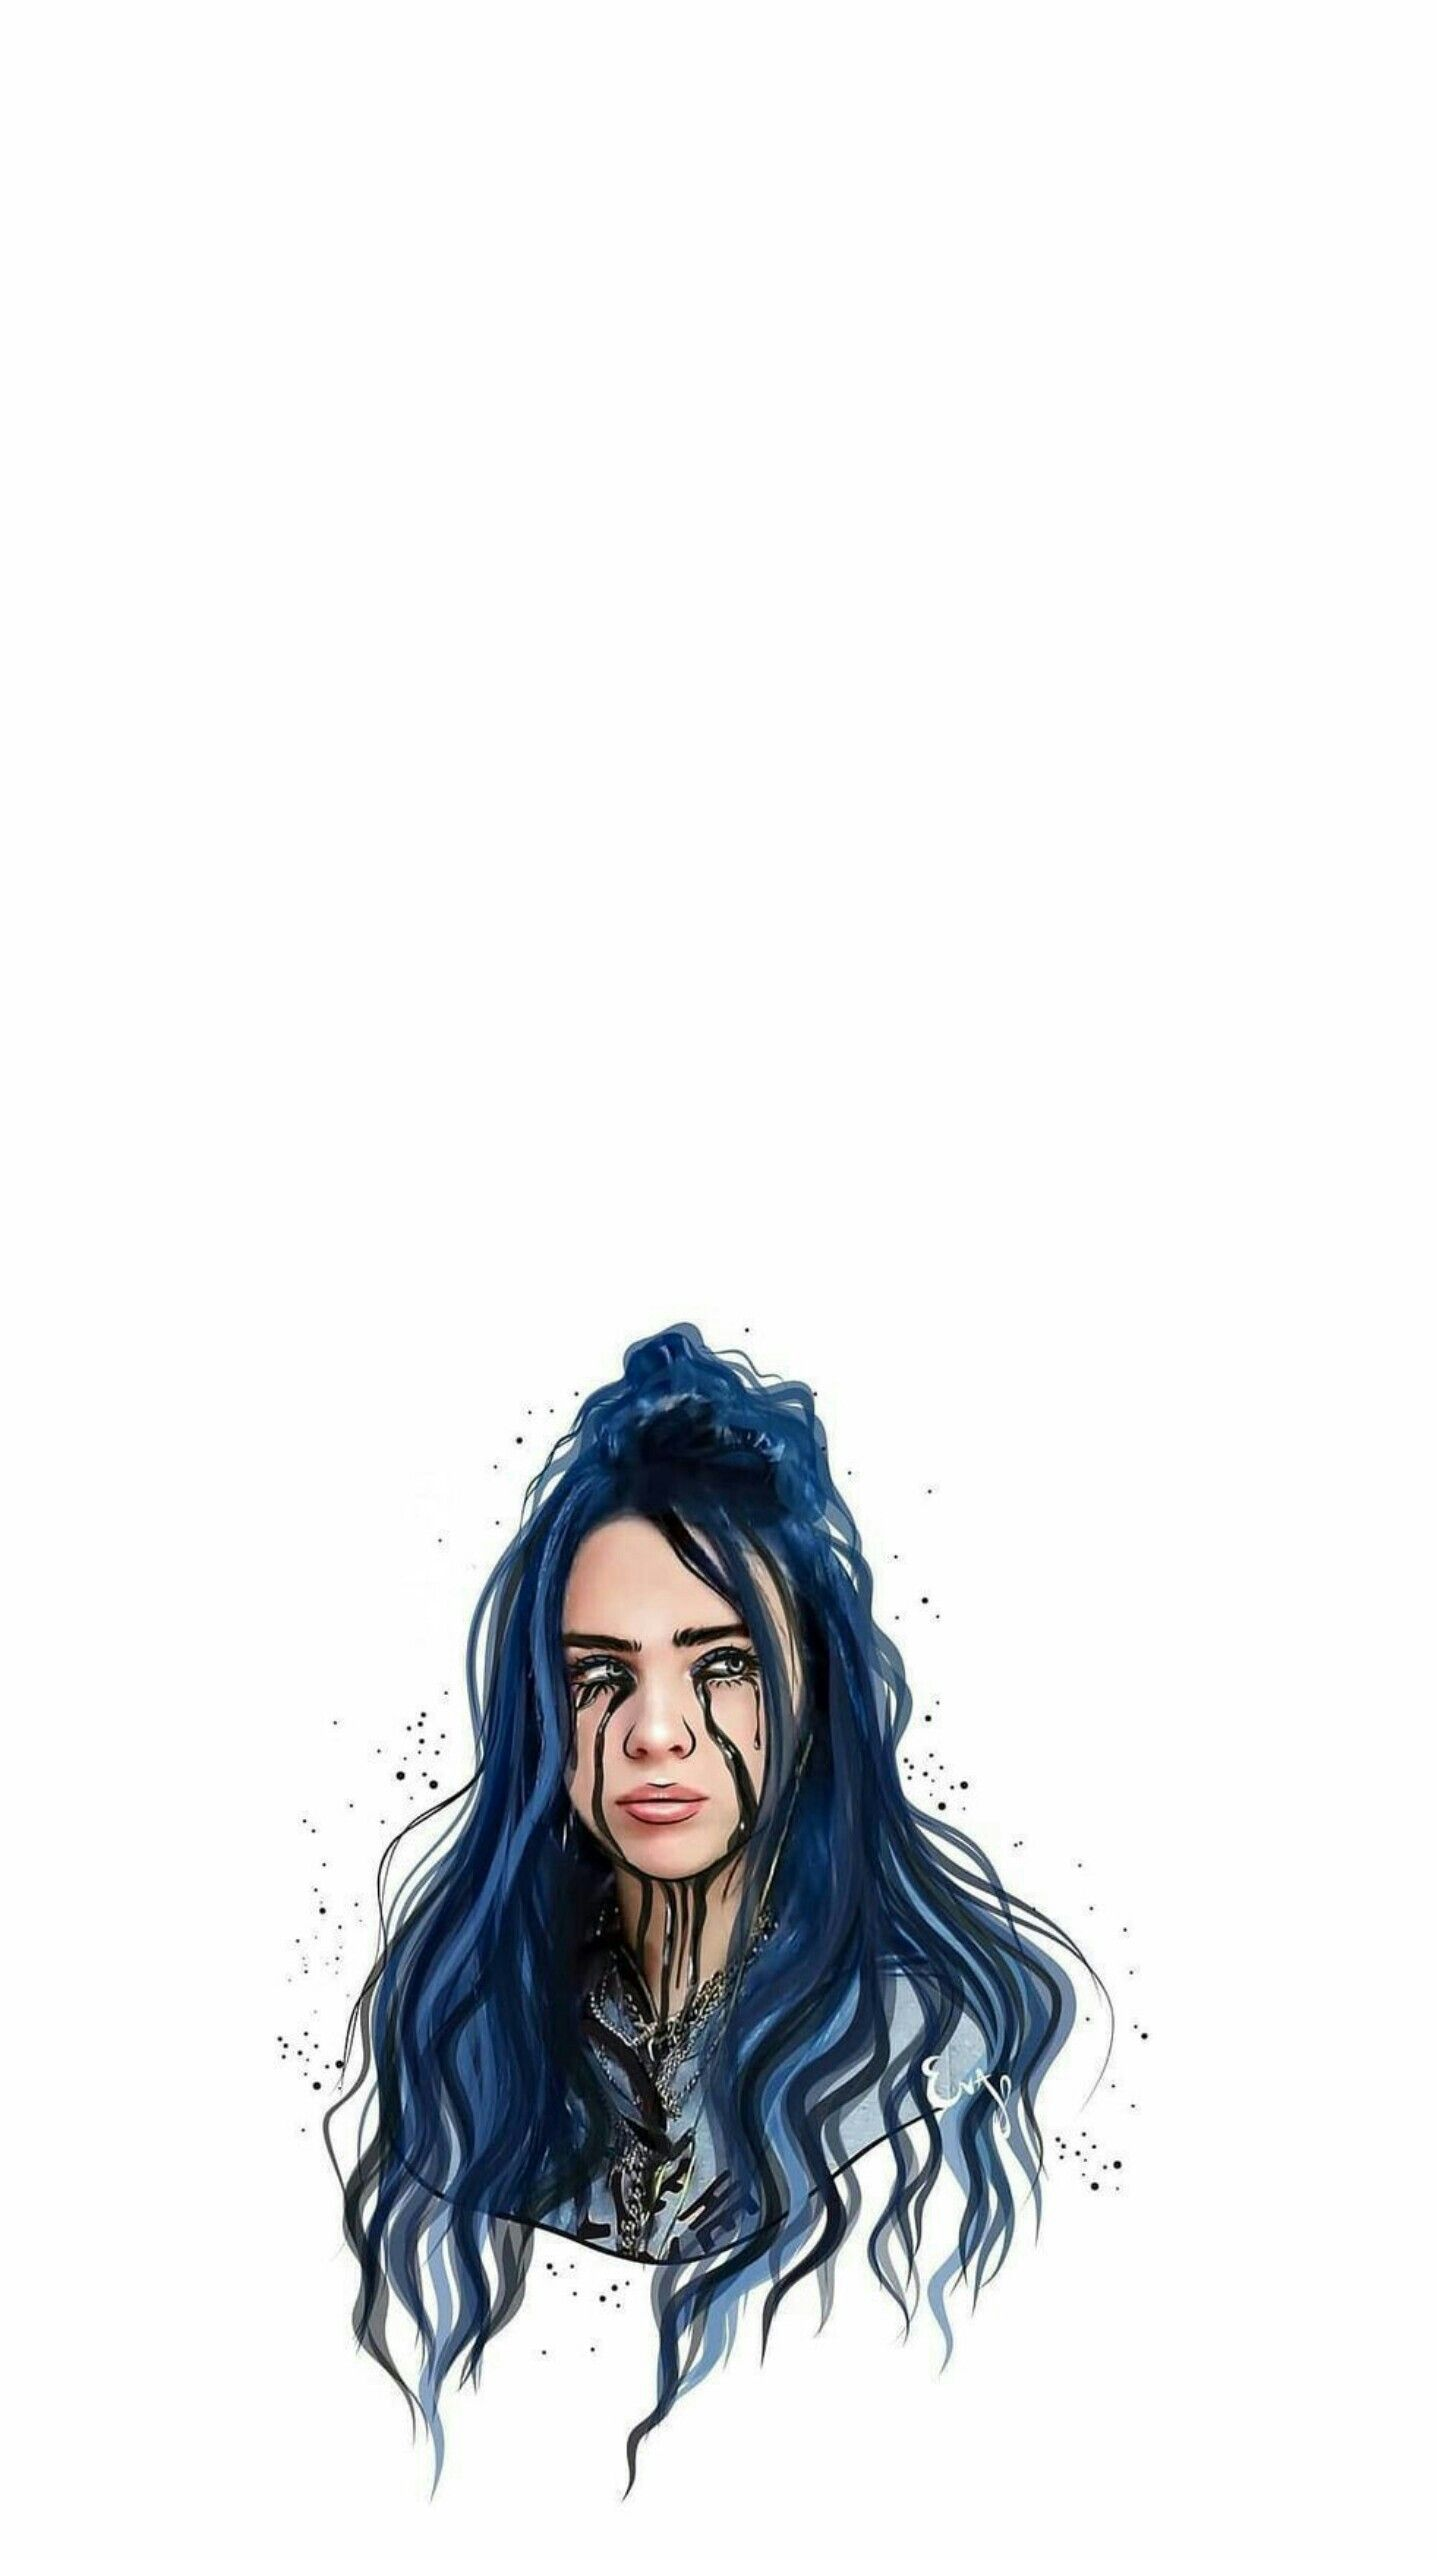 Billie Eilish When The Party S Over Aesthetic Lyrics Wallpaper Iphone Android Billie Billie Eilish Iphone Wallpaper